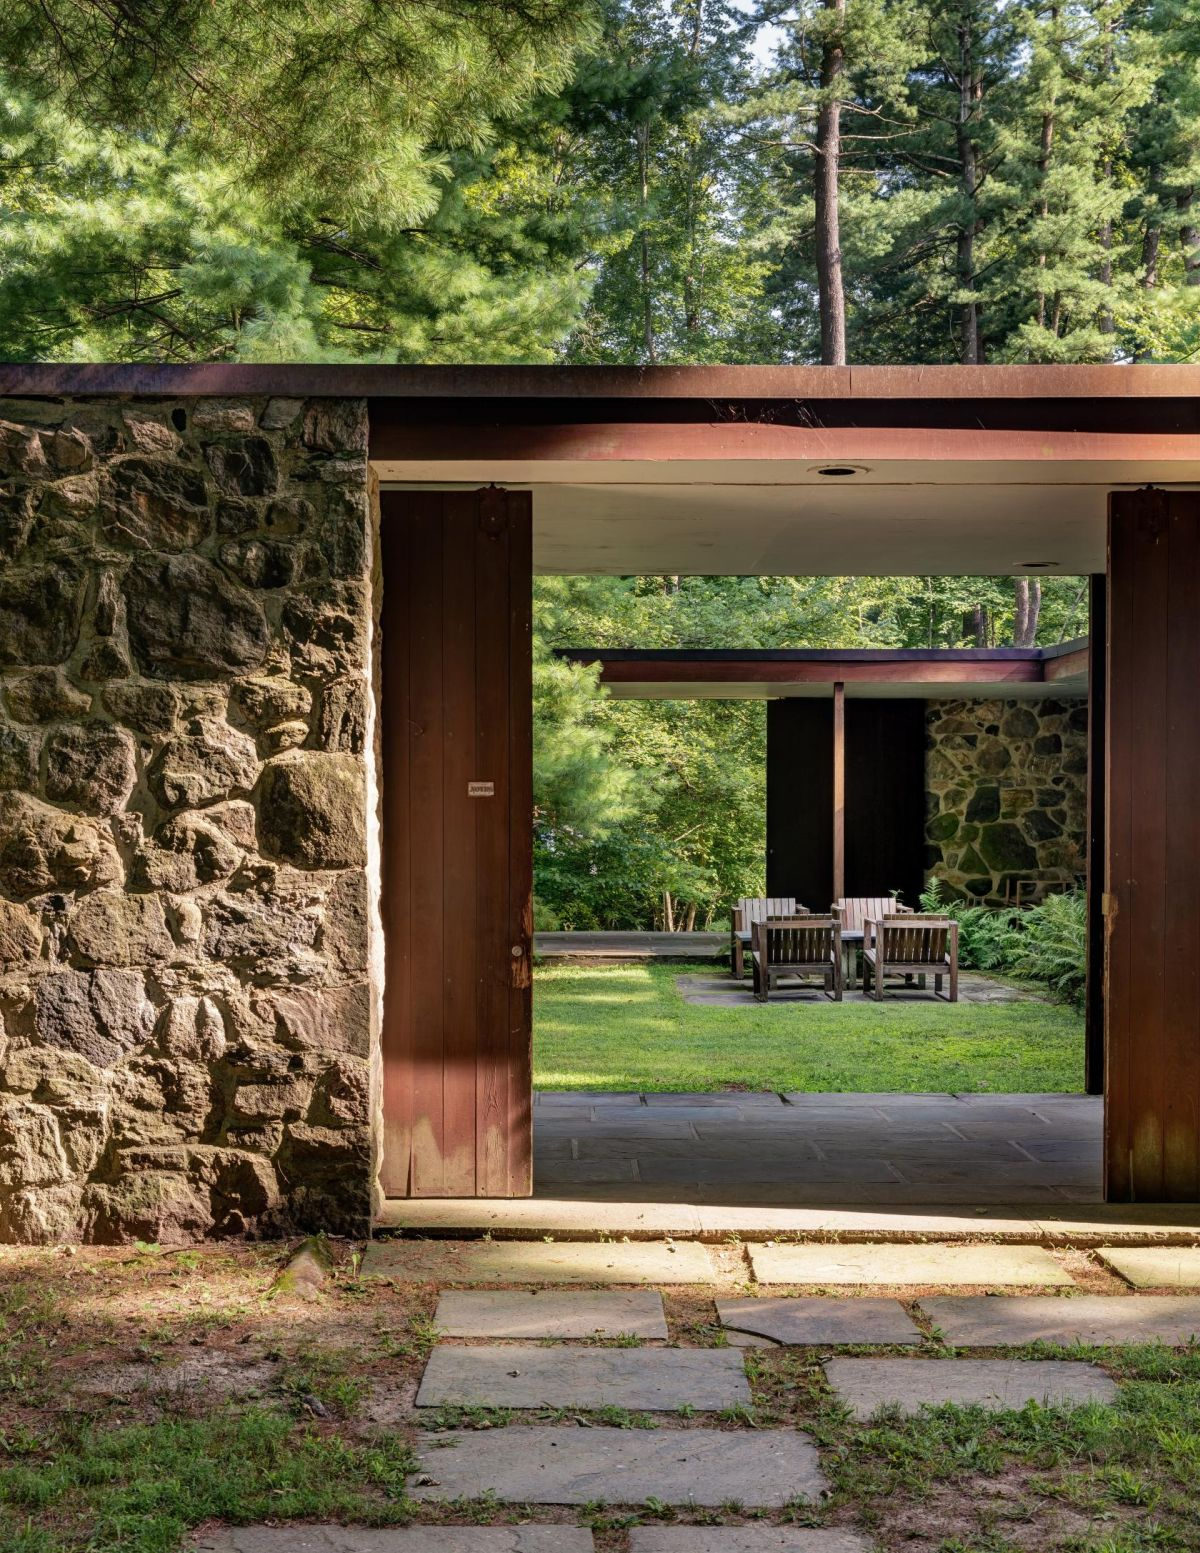 A central,open-sit courtyard is nestled between the two wings, resembling a fresh and intimate oasis